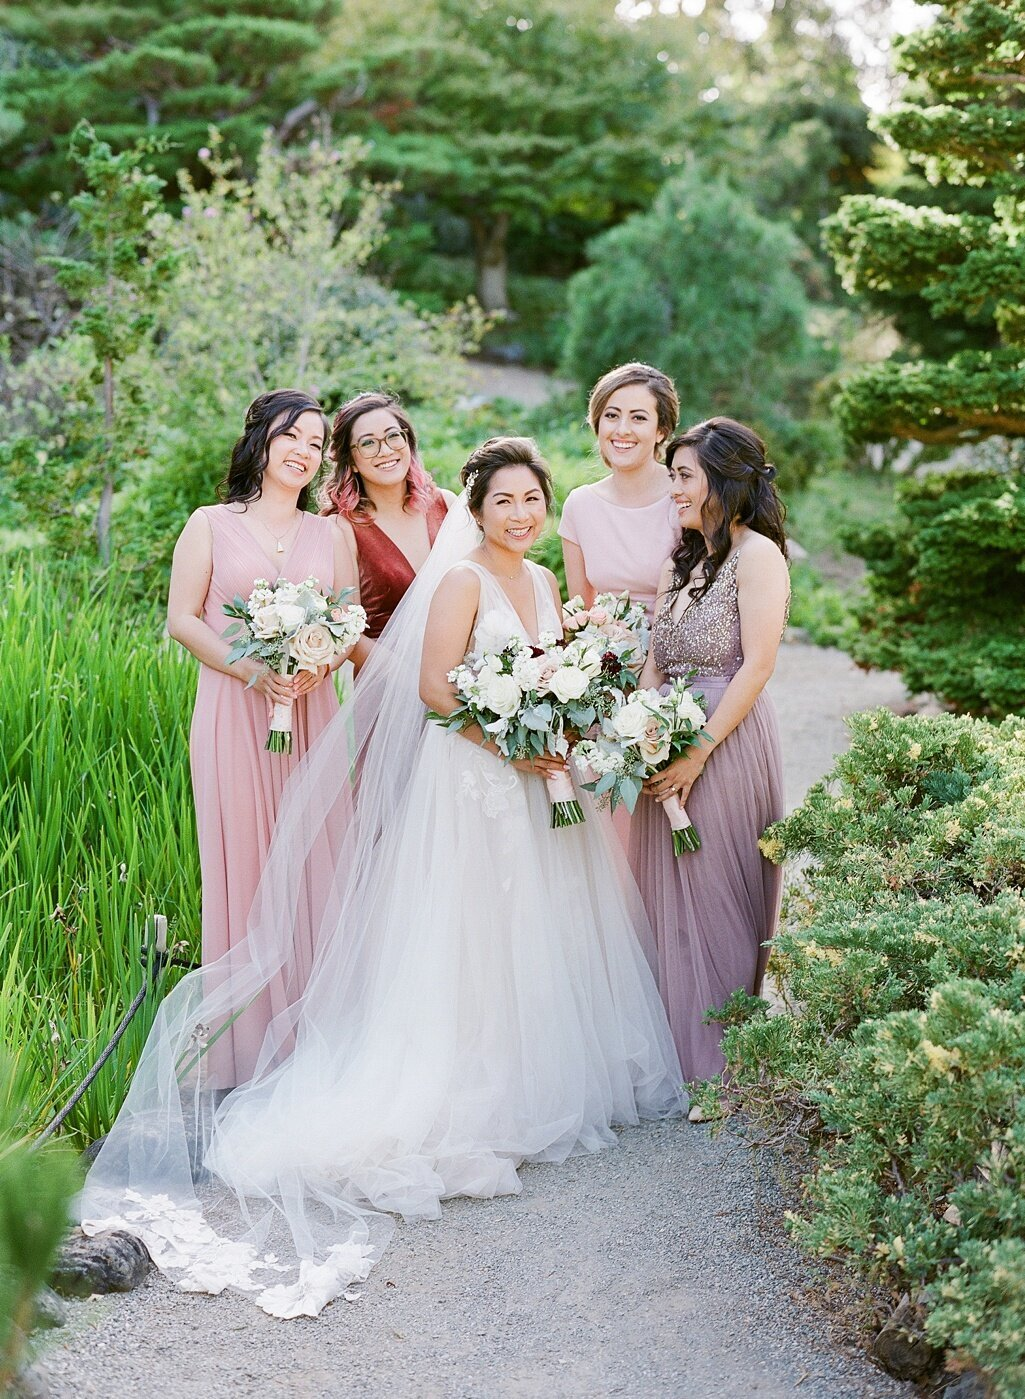 Jessie-Barksdale-Photography_Hakone-Gardens-Saratoga_San-Francisco-Bay-Area-Wedding-Photographer_0056